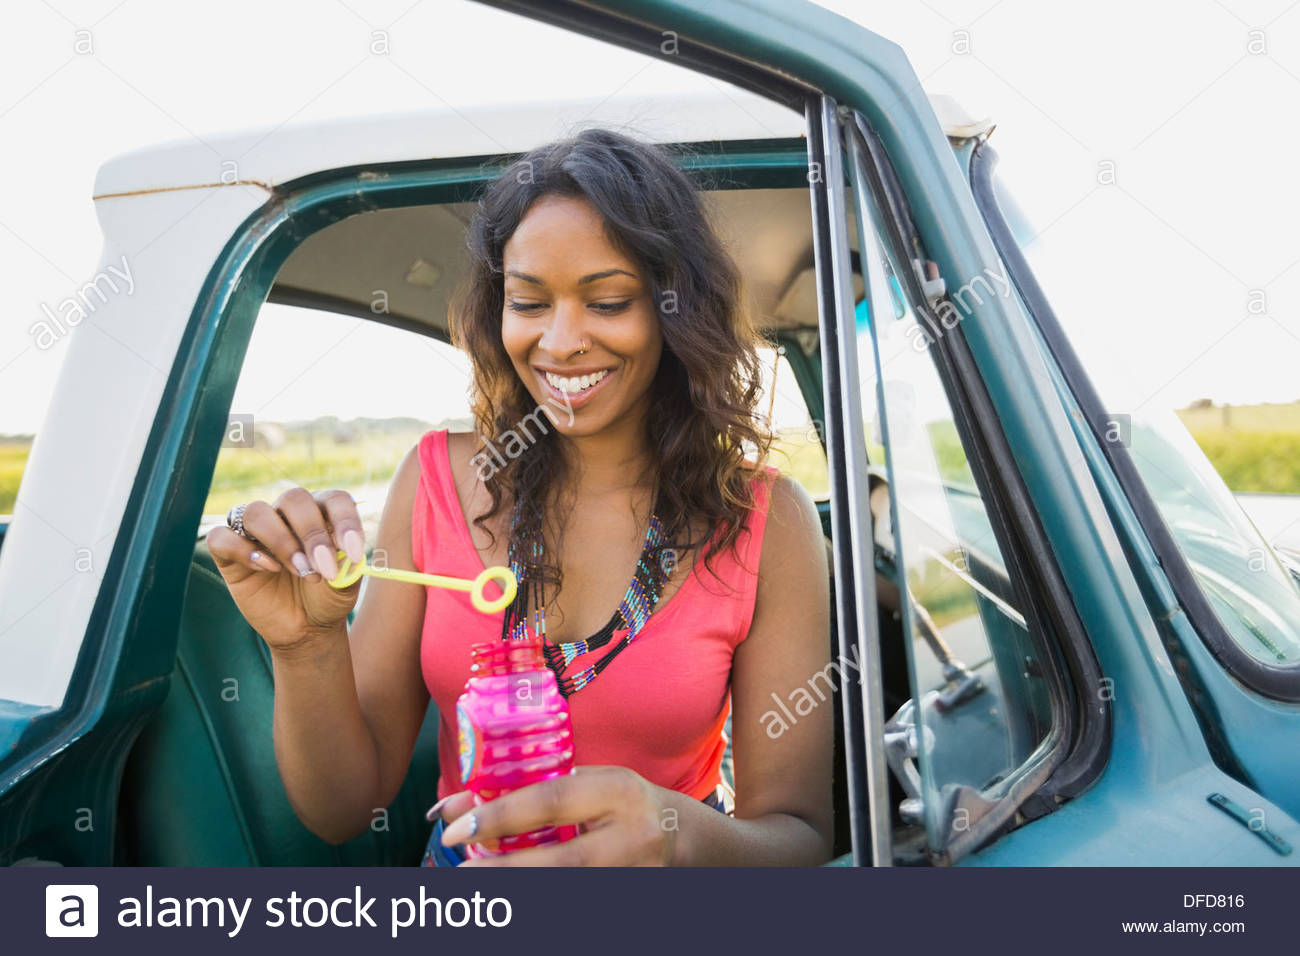 Woman blowing bubbles out of pick-up truck - Stock Image